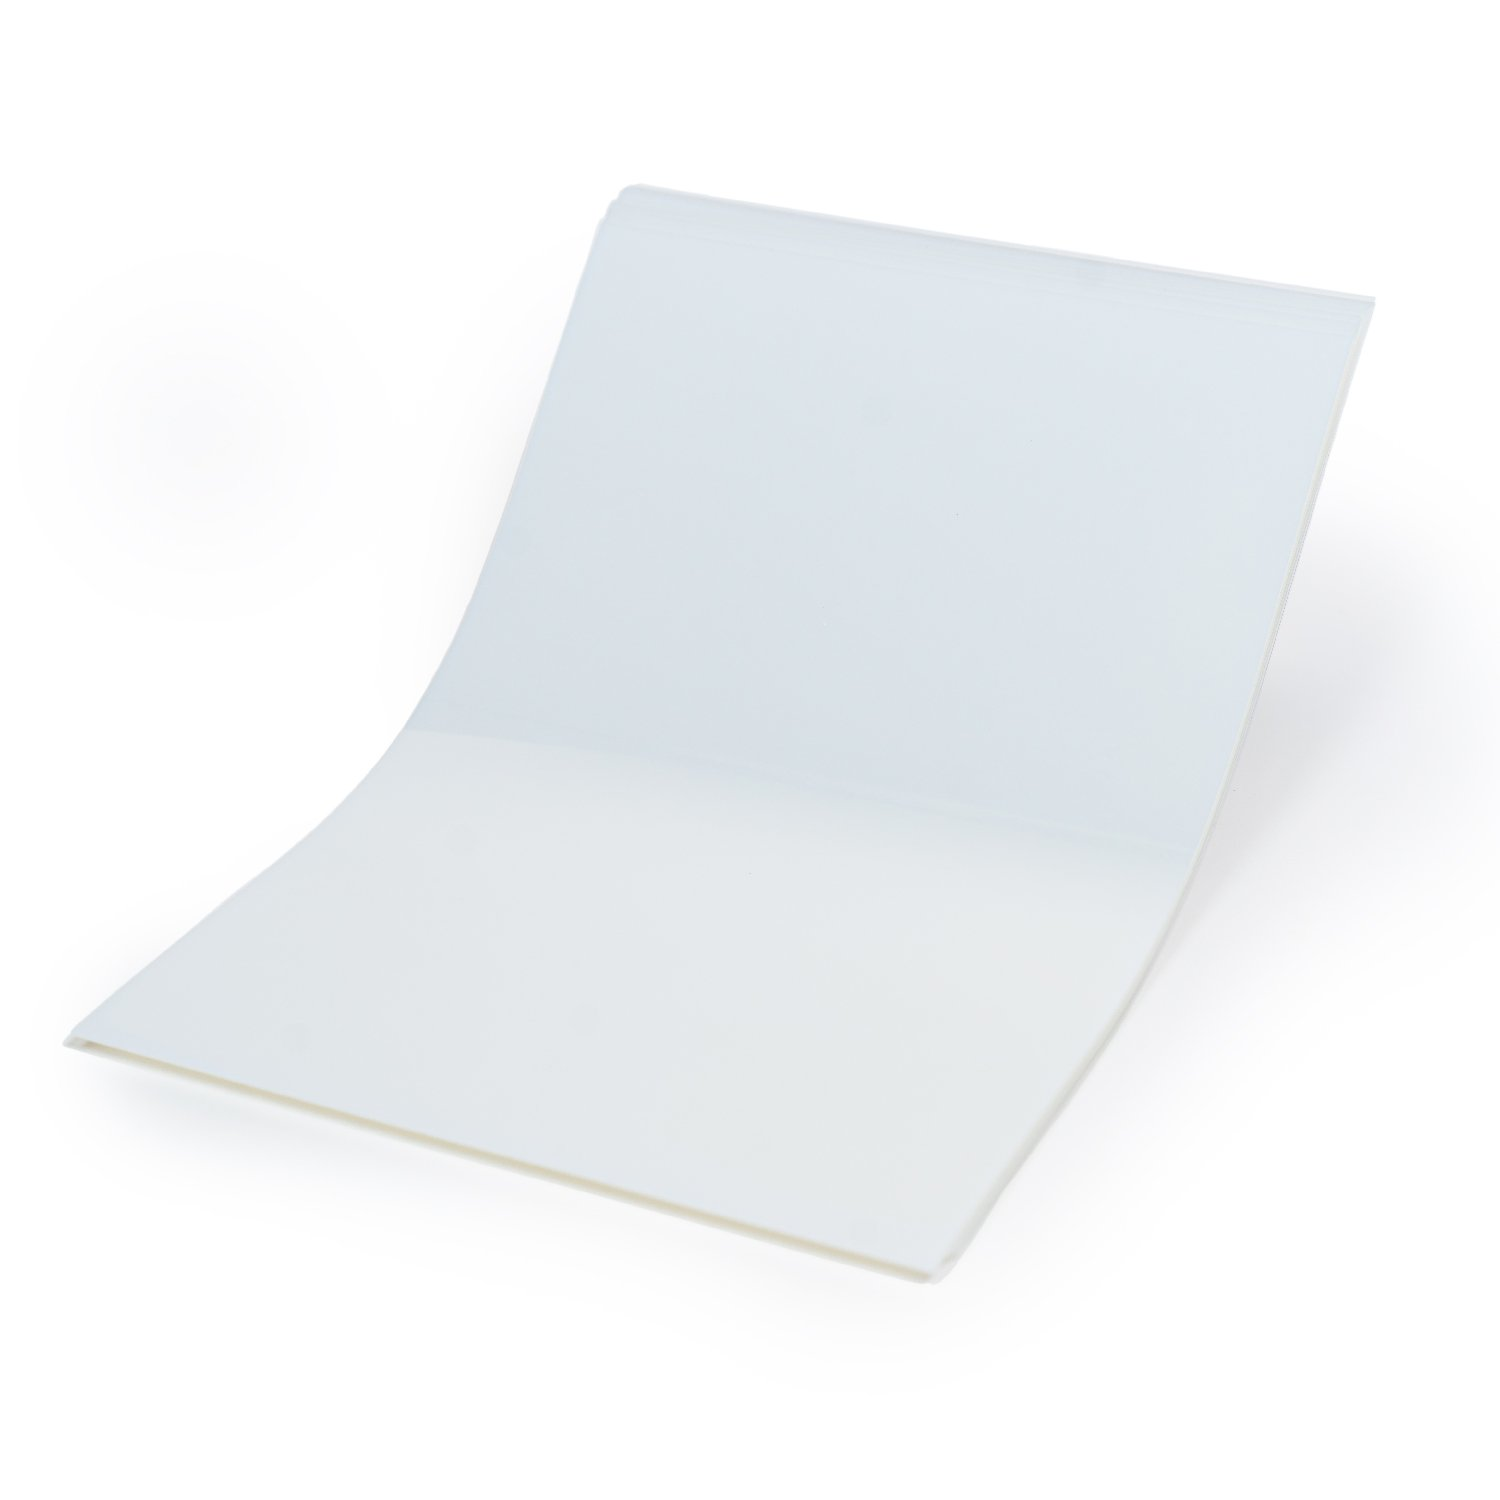 CISinks 100 Sheets 100micron Universal WaterProof Quick Drying Inkjet Transparency Film for Printing Silk Screen Positives 13'' x 19''